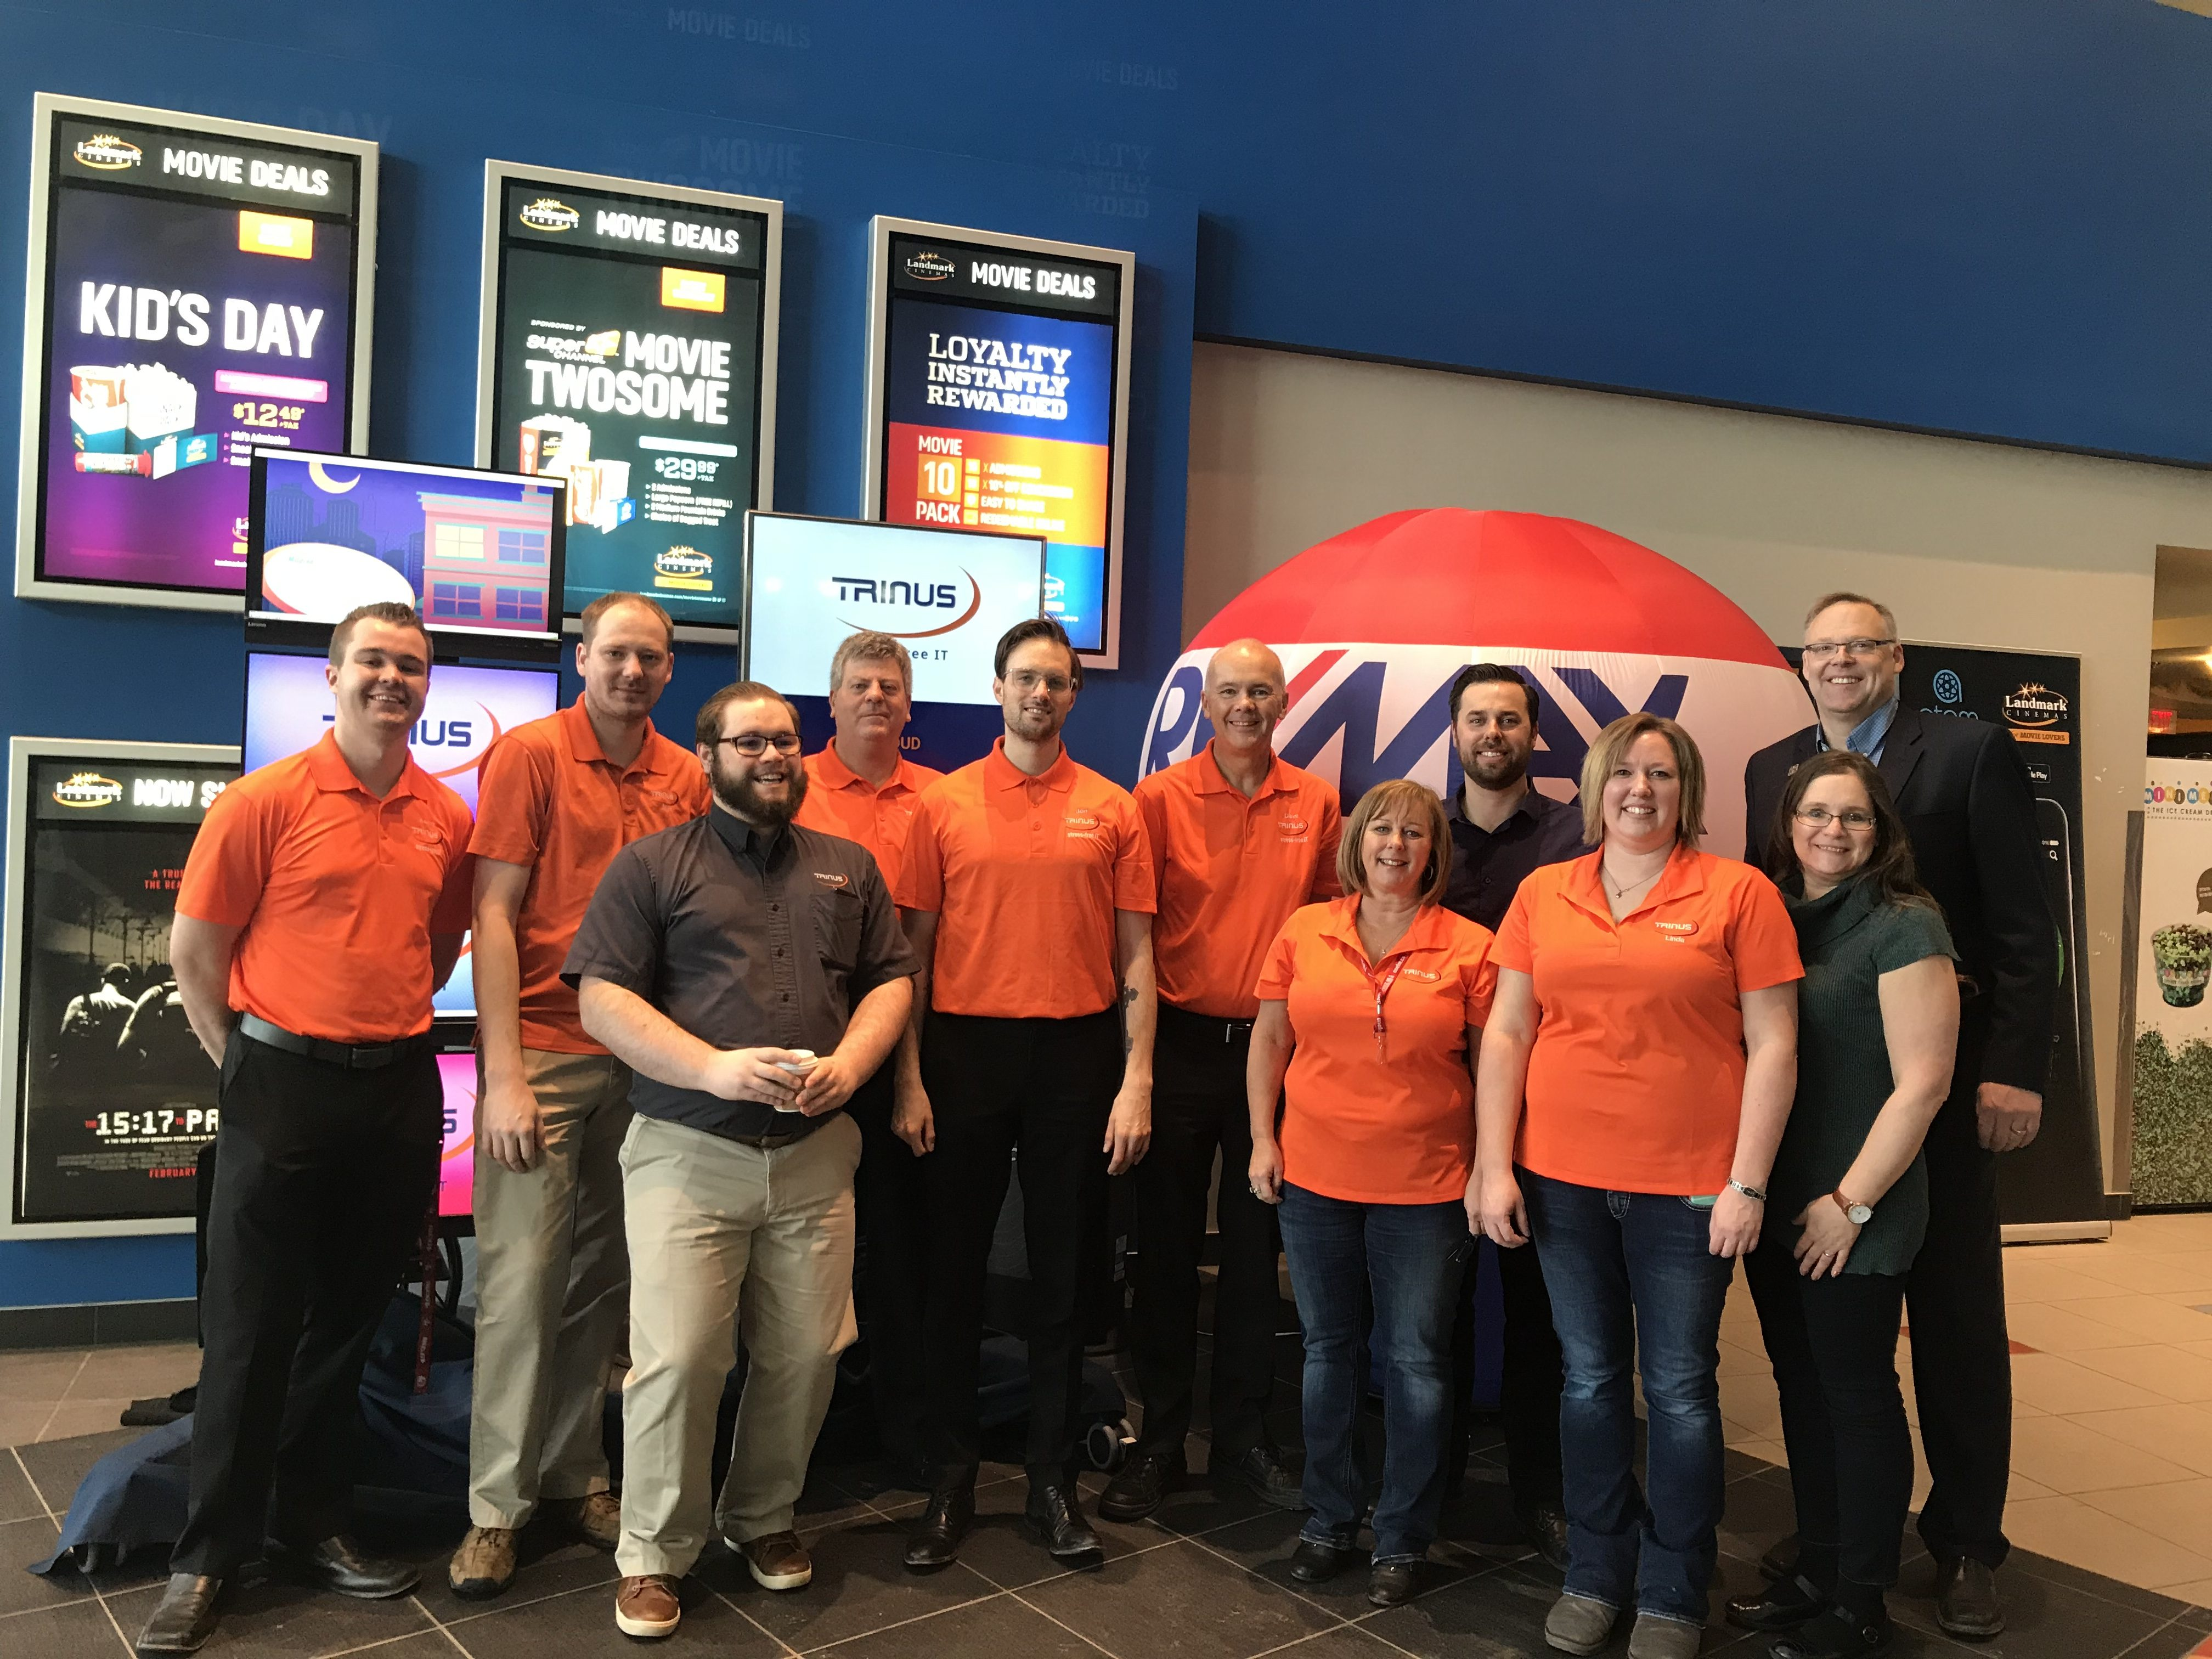 Client Appreciation & Family Day at Landmark Cinema, Spruce Grove – Co-hosted by TRINUS / Ben & Lawrence (REMAX)